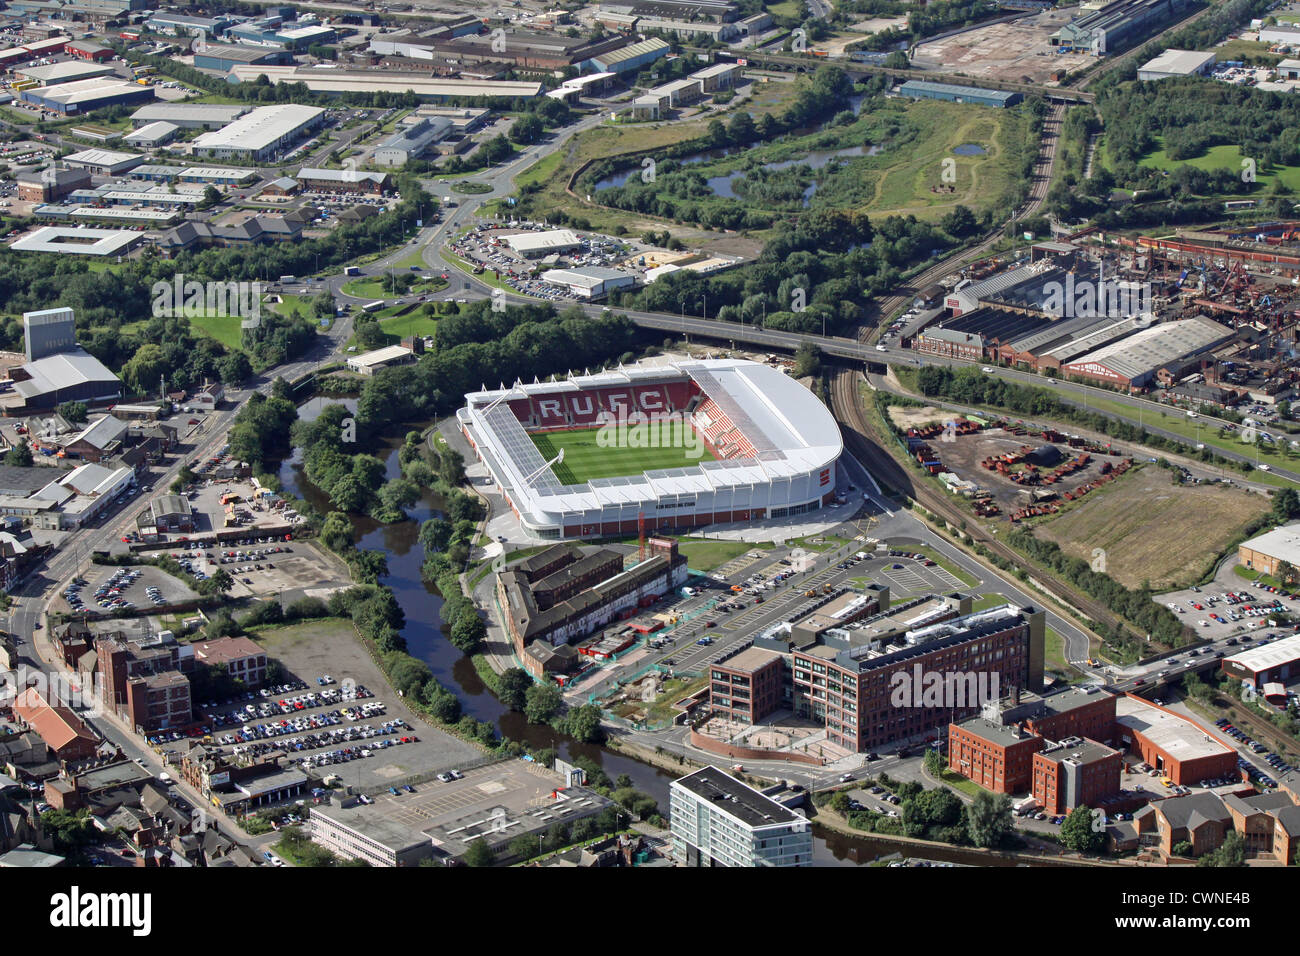 Vista aerea del Rotherham United football ground, South Yorkshire Immagini Stock